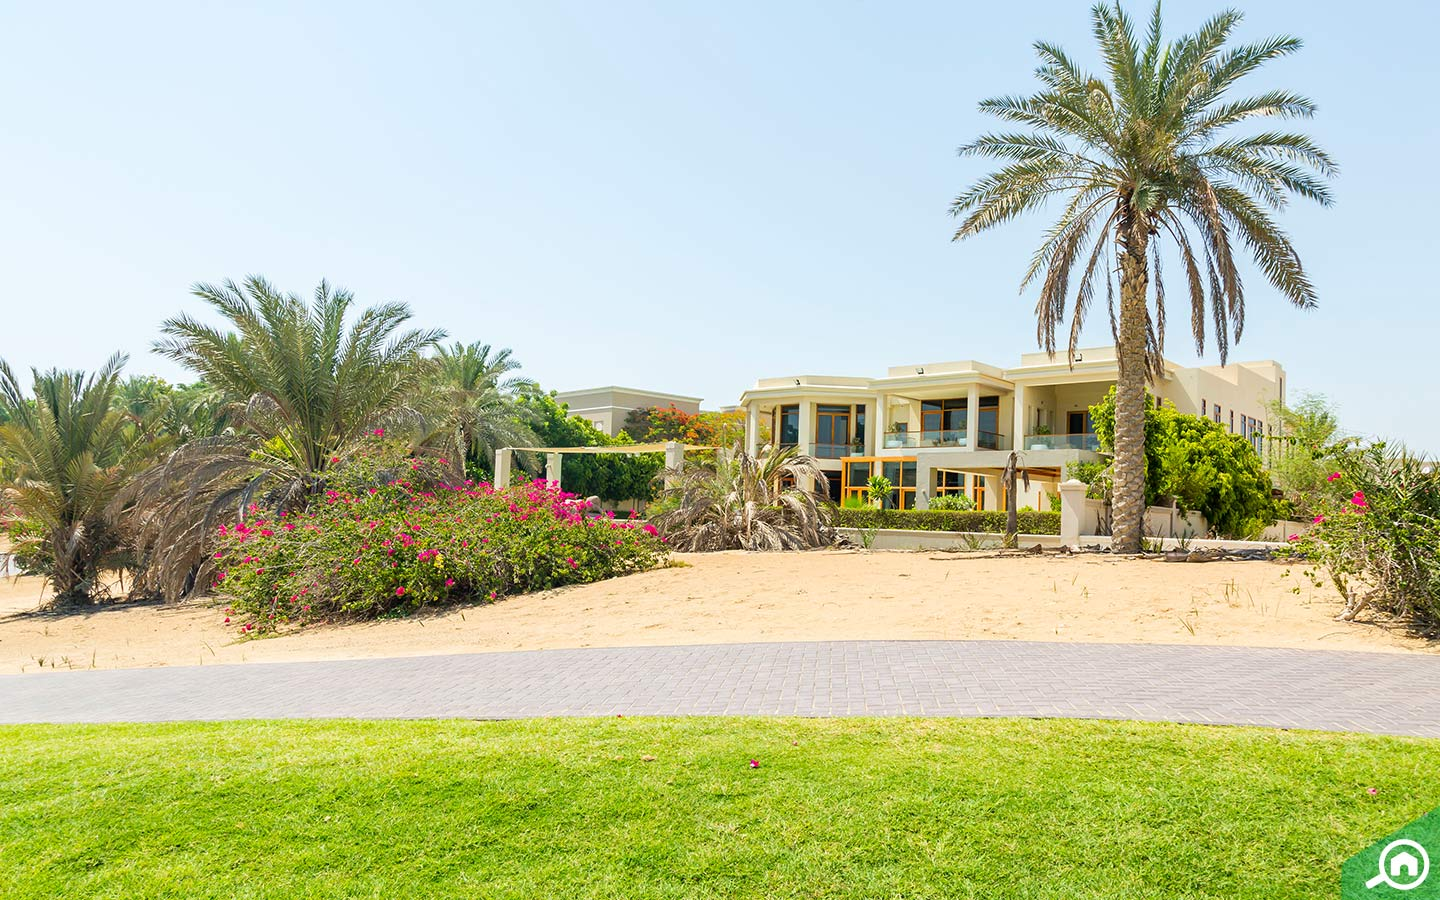 Villa surrounded by greenery in Emirates Hills